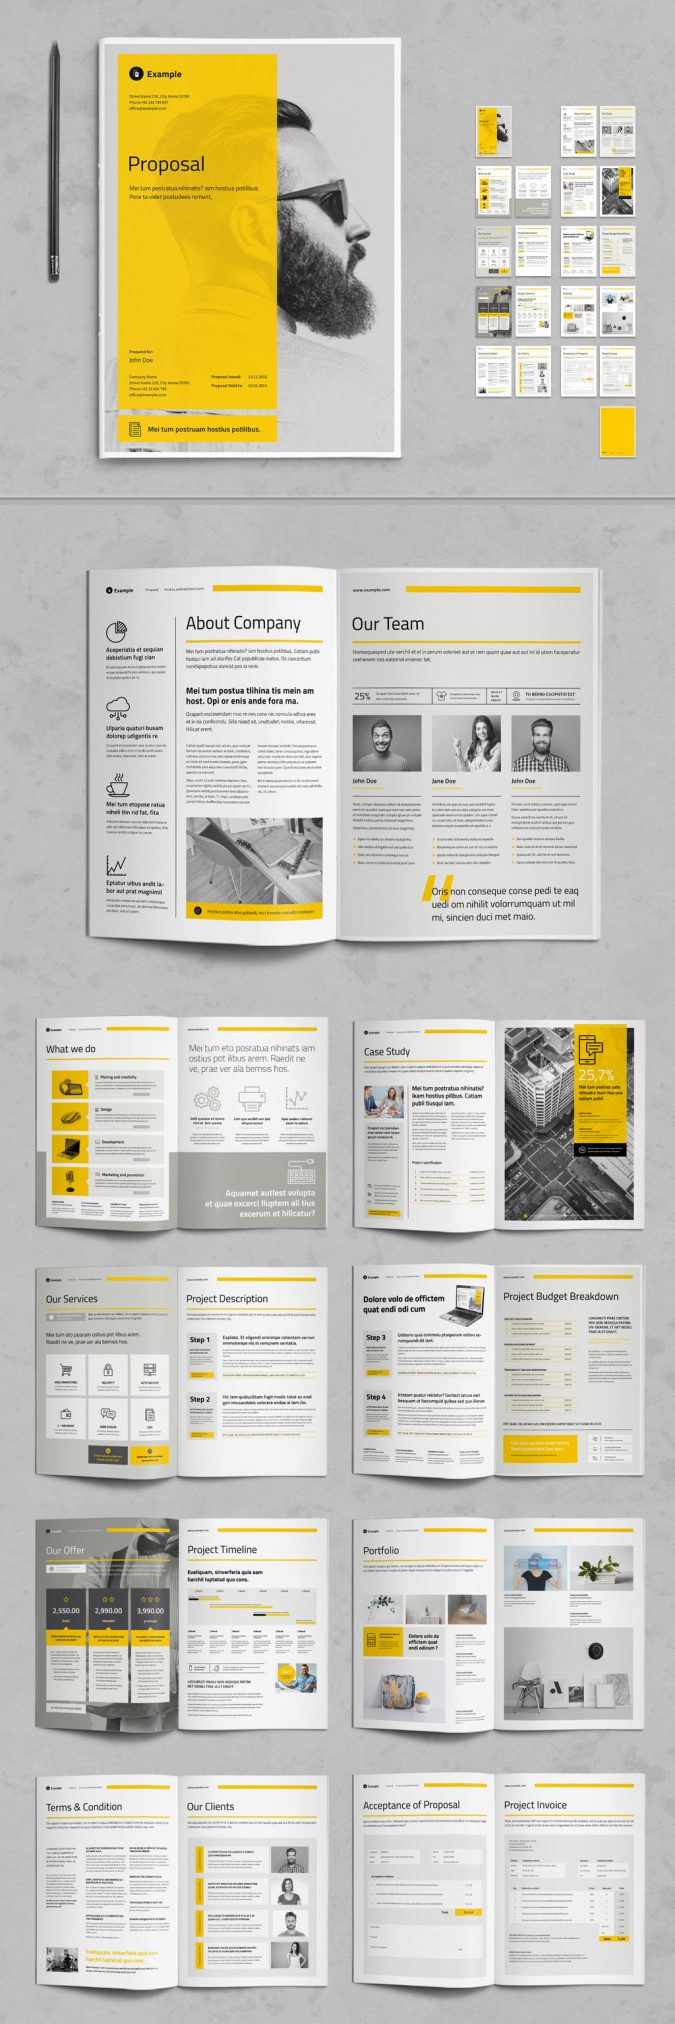 Business Proposal Template with Yellow and Gray Accents for Adobe InDesign.